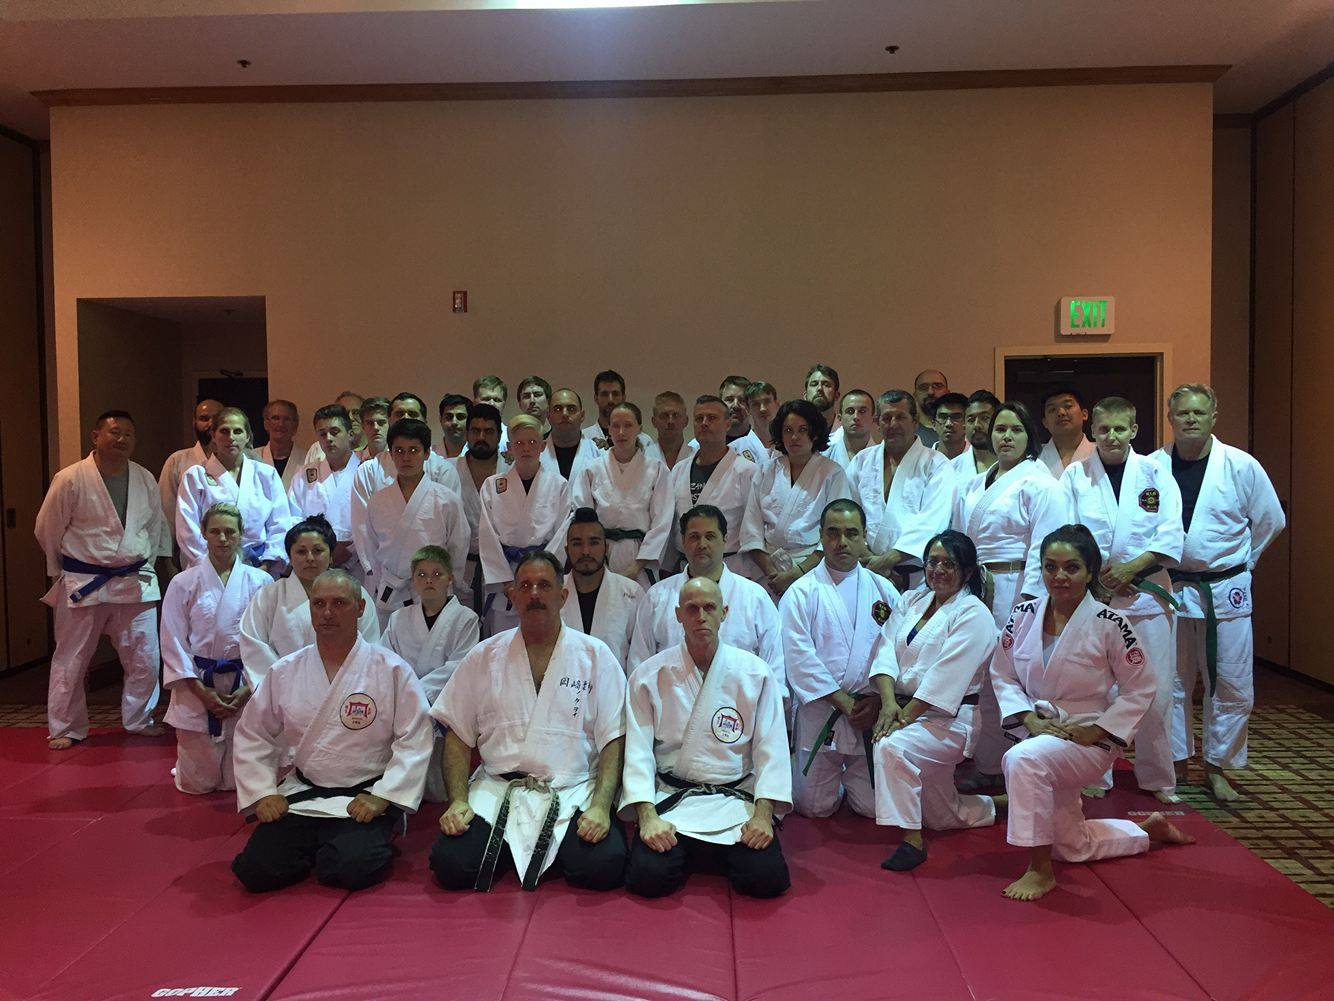 "Yawara ""From Control to Knockout"" Class, taught by Professors Tony Janovich and Clive Guth, with the help of Sensei Jason Romano. 2017 American Judo & Jujitsu Federation Convention"